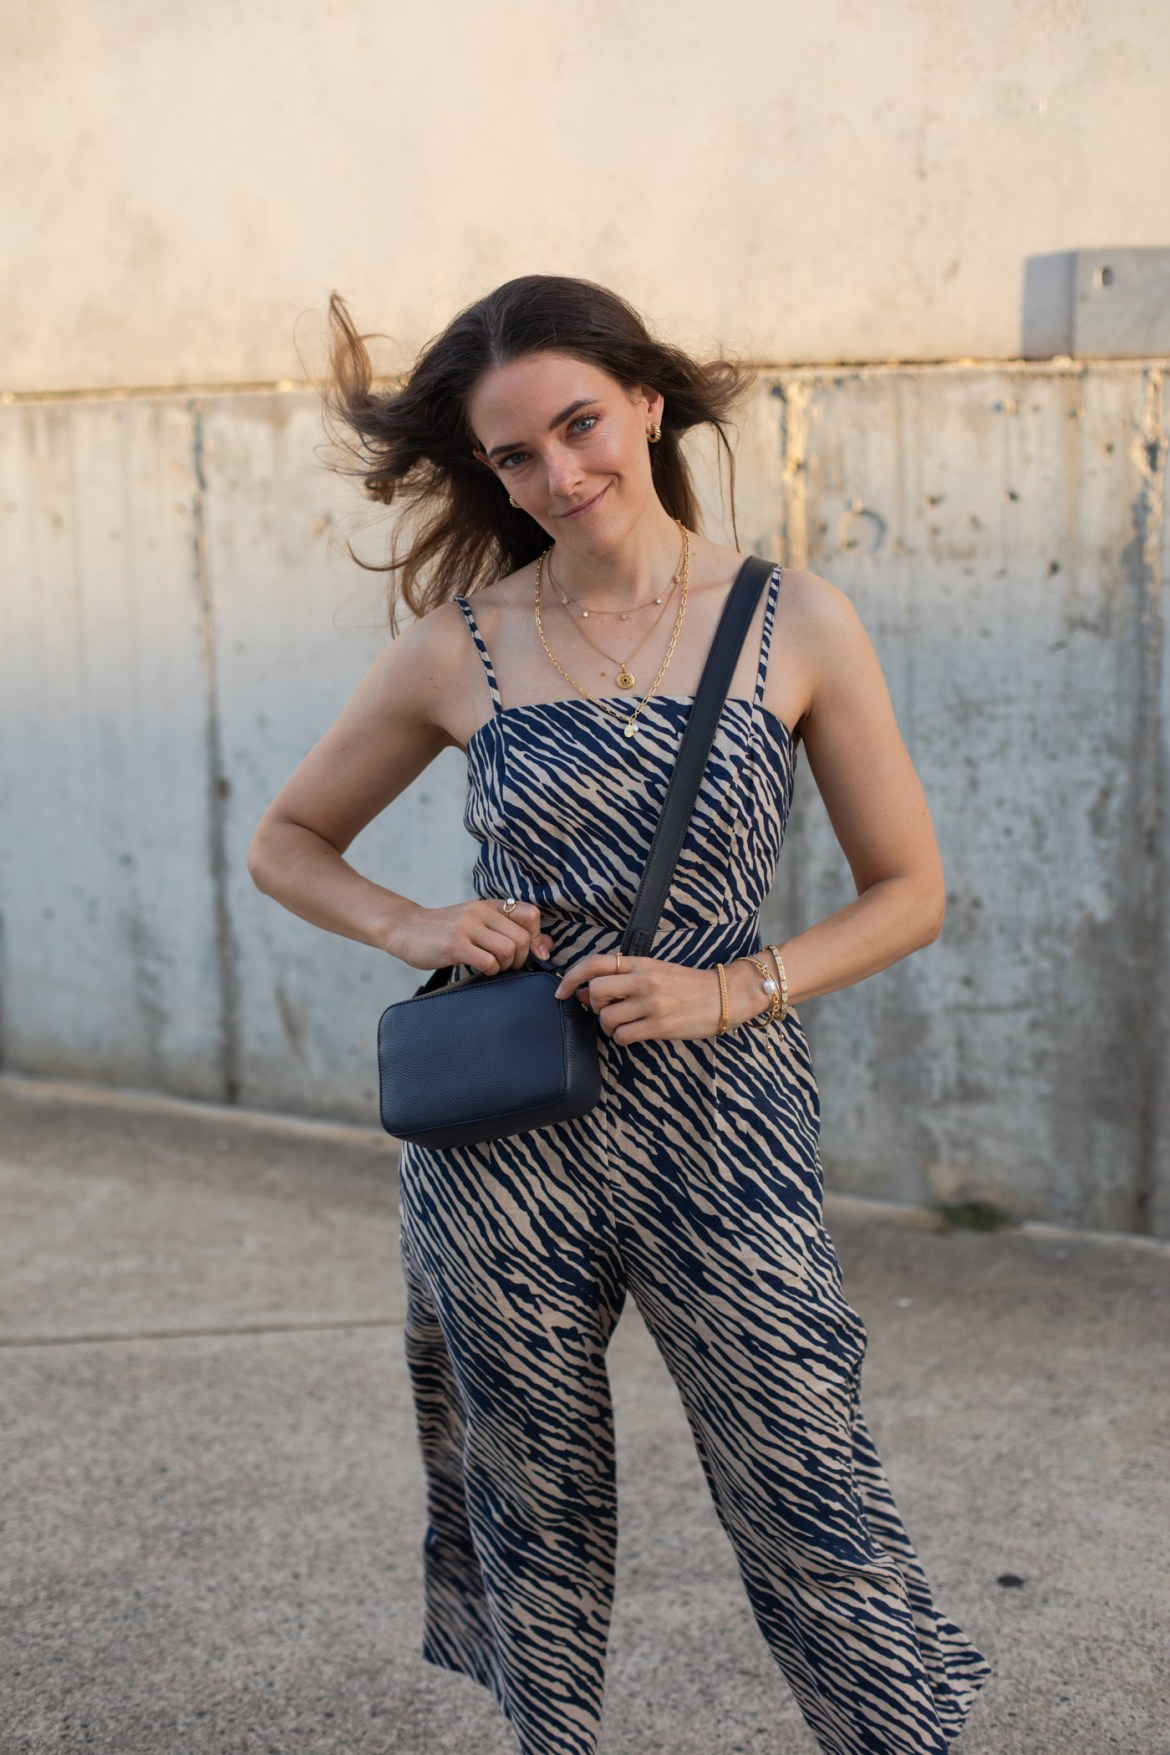 Boden outfit with zebra print